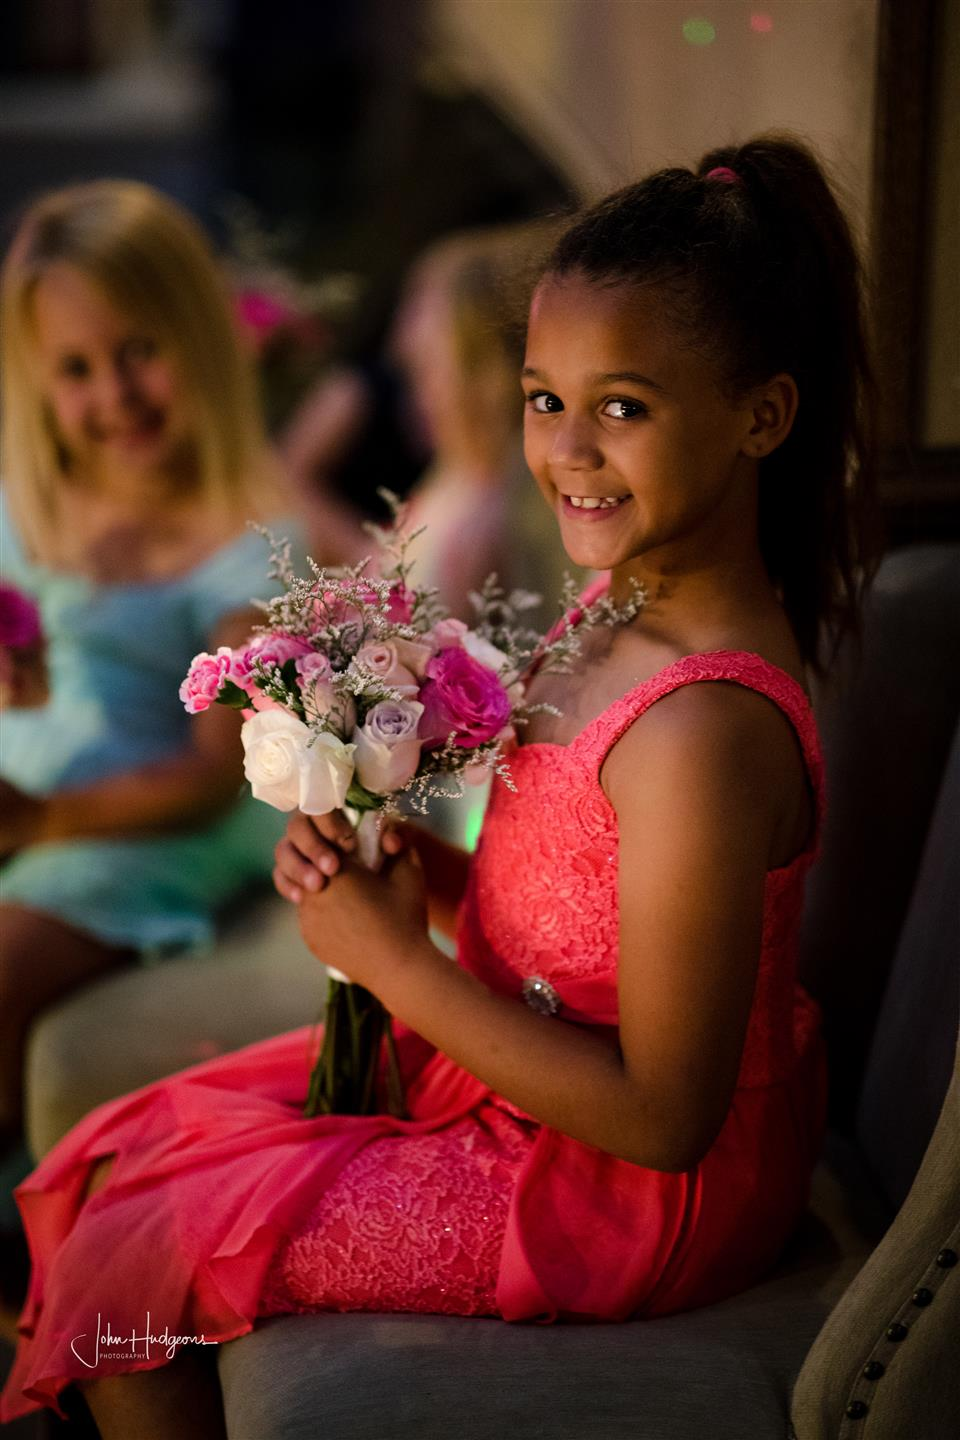 Young girl sitting in chair holding wedding flowers